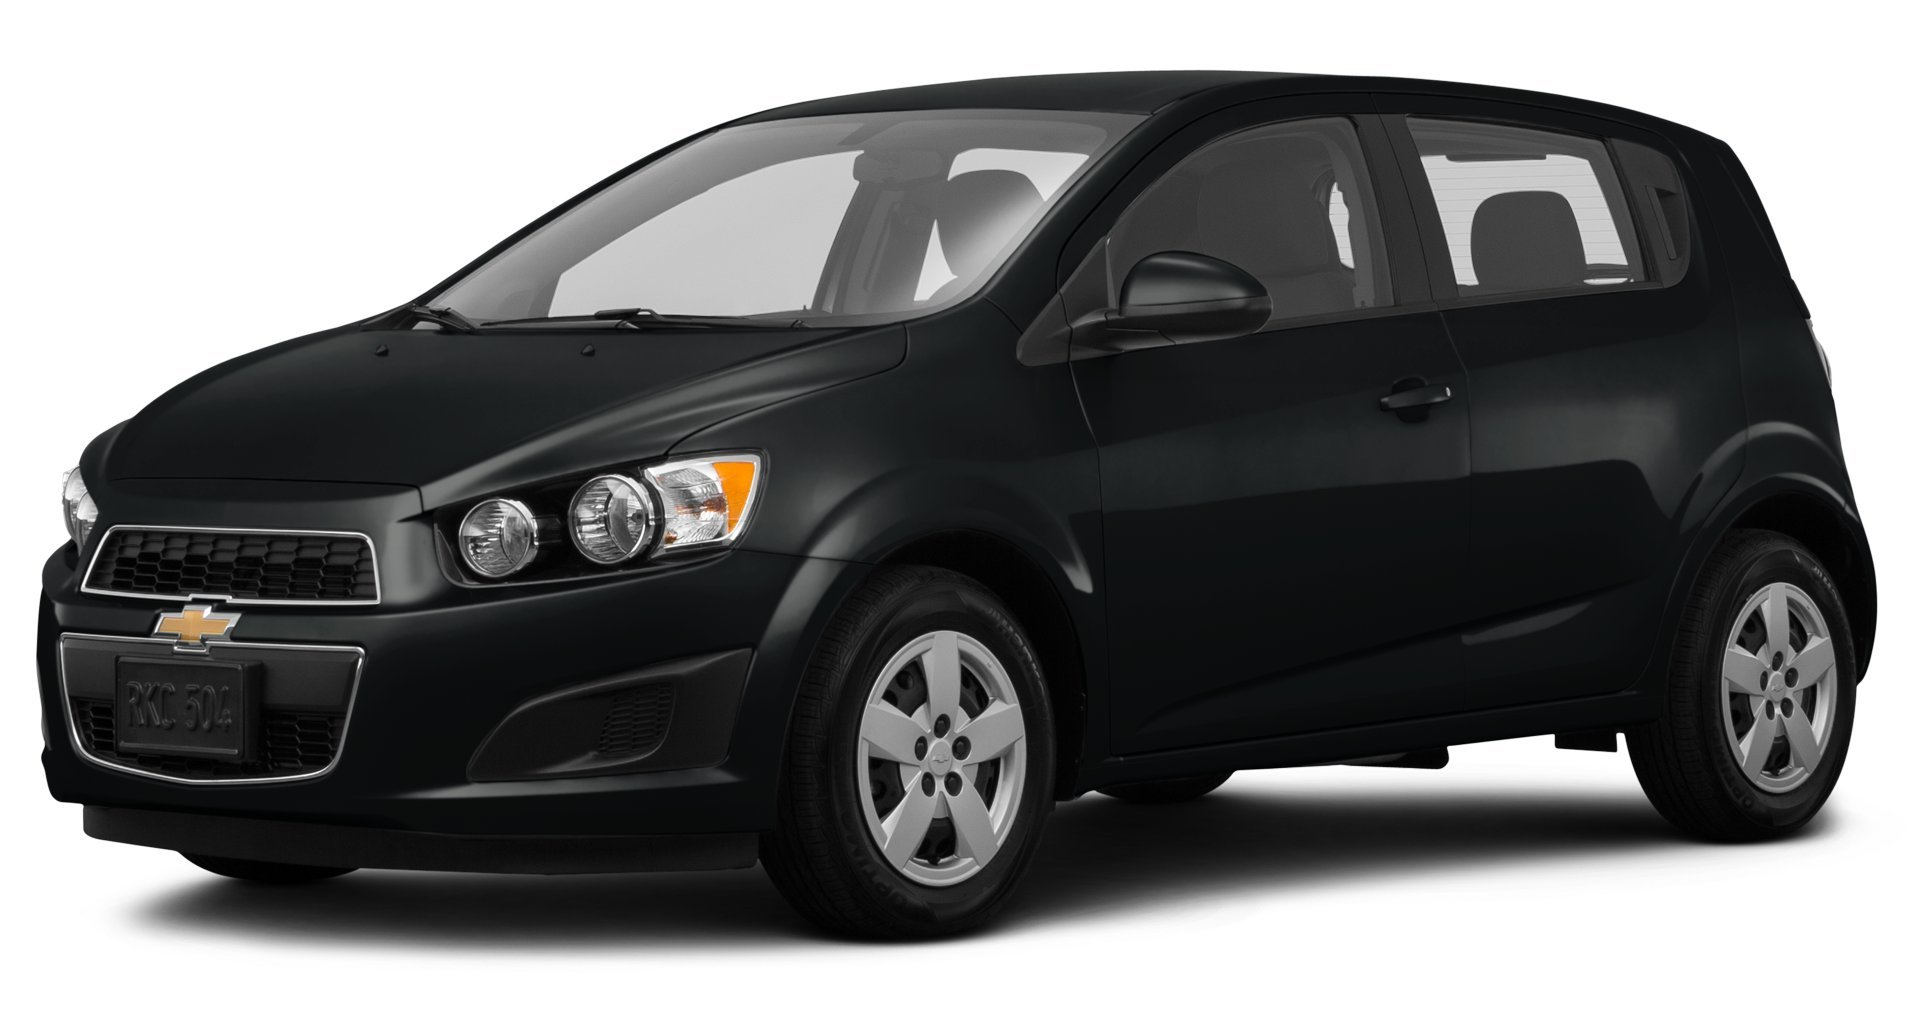 Chevrolet Sonic Repair Manual: Water Outlet Replacement (LUV)